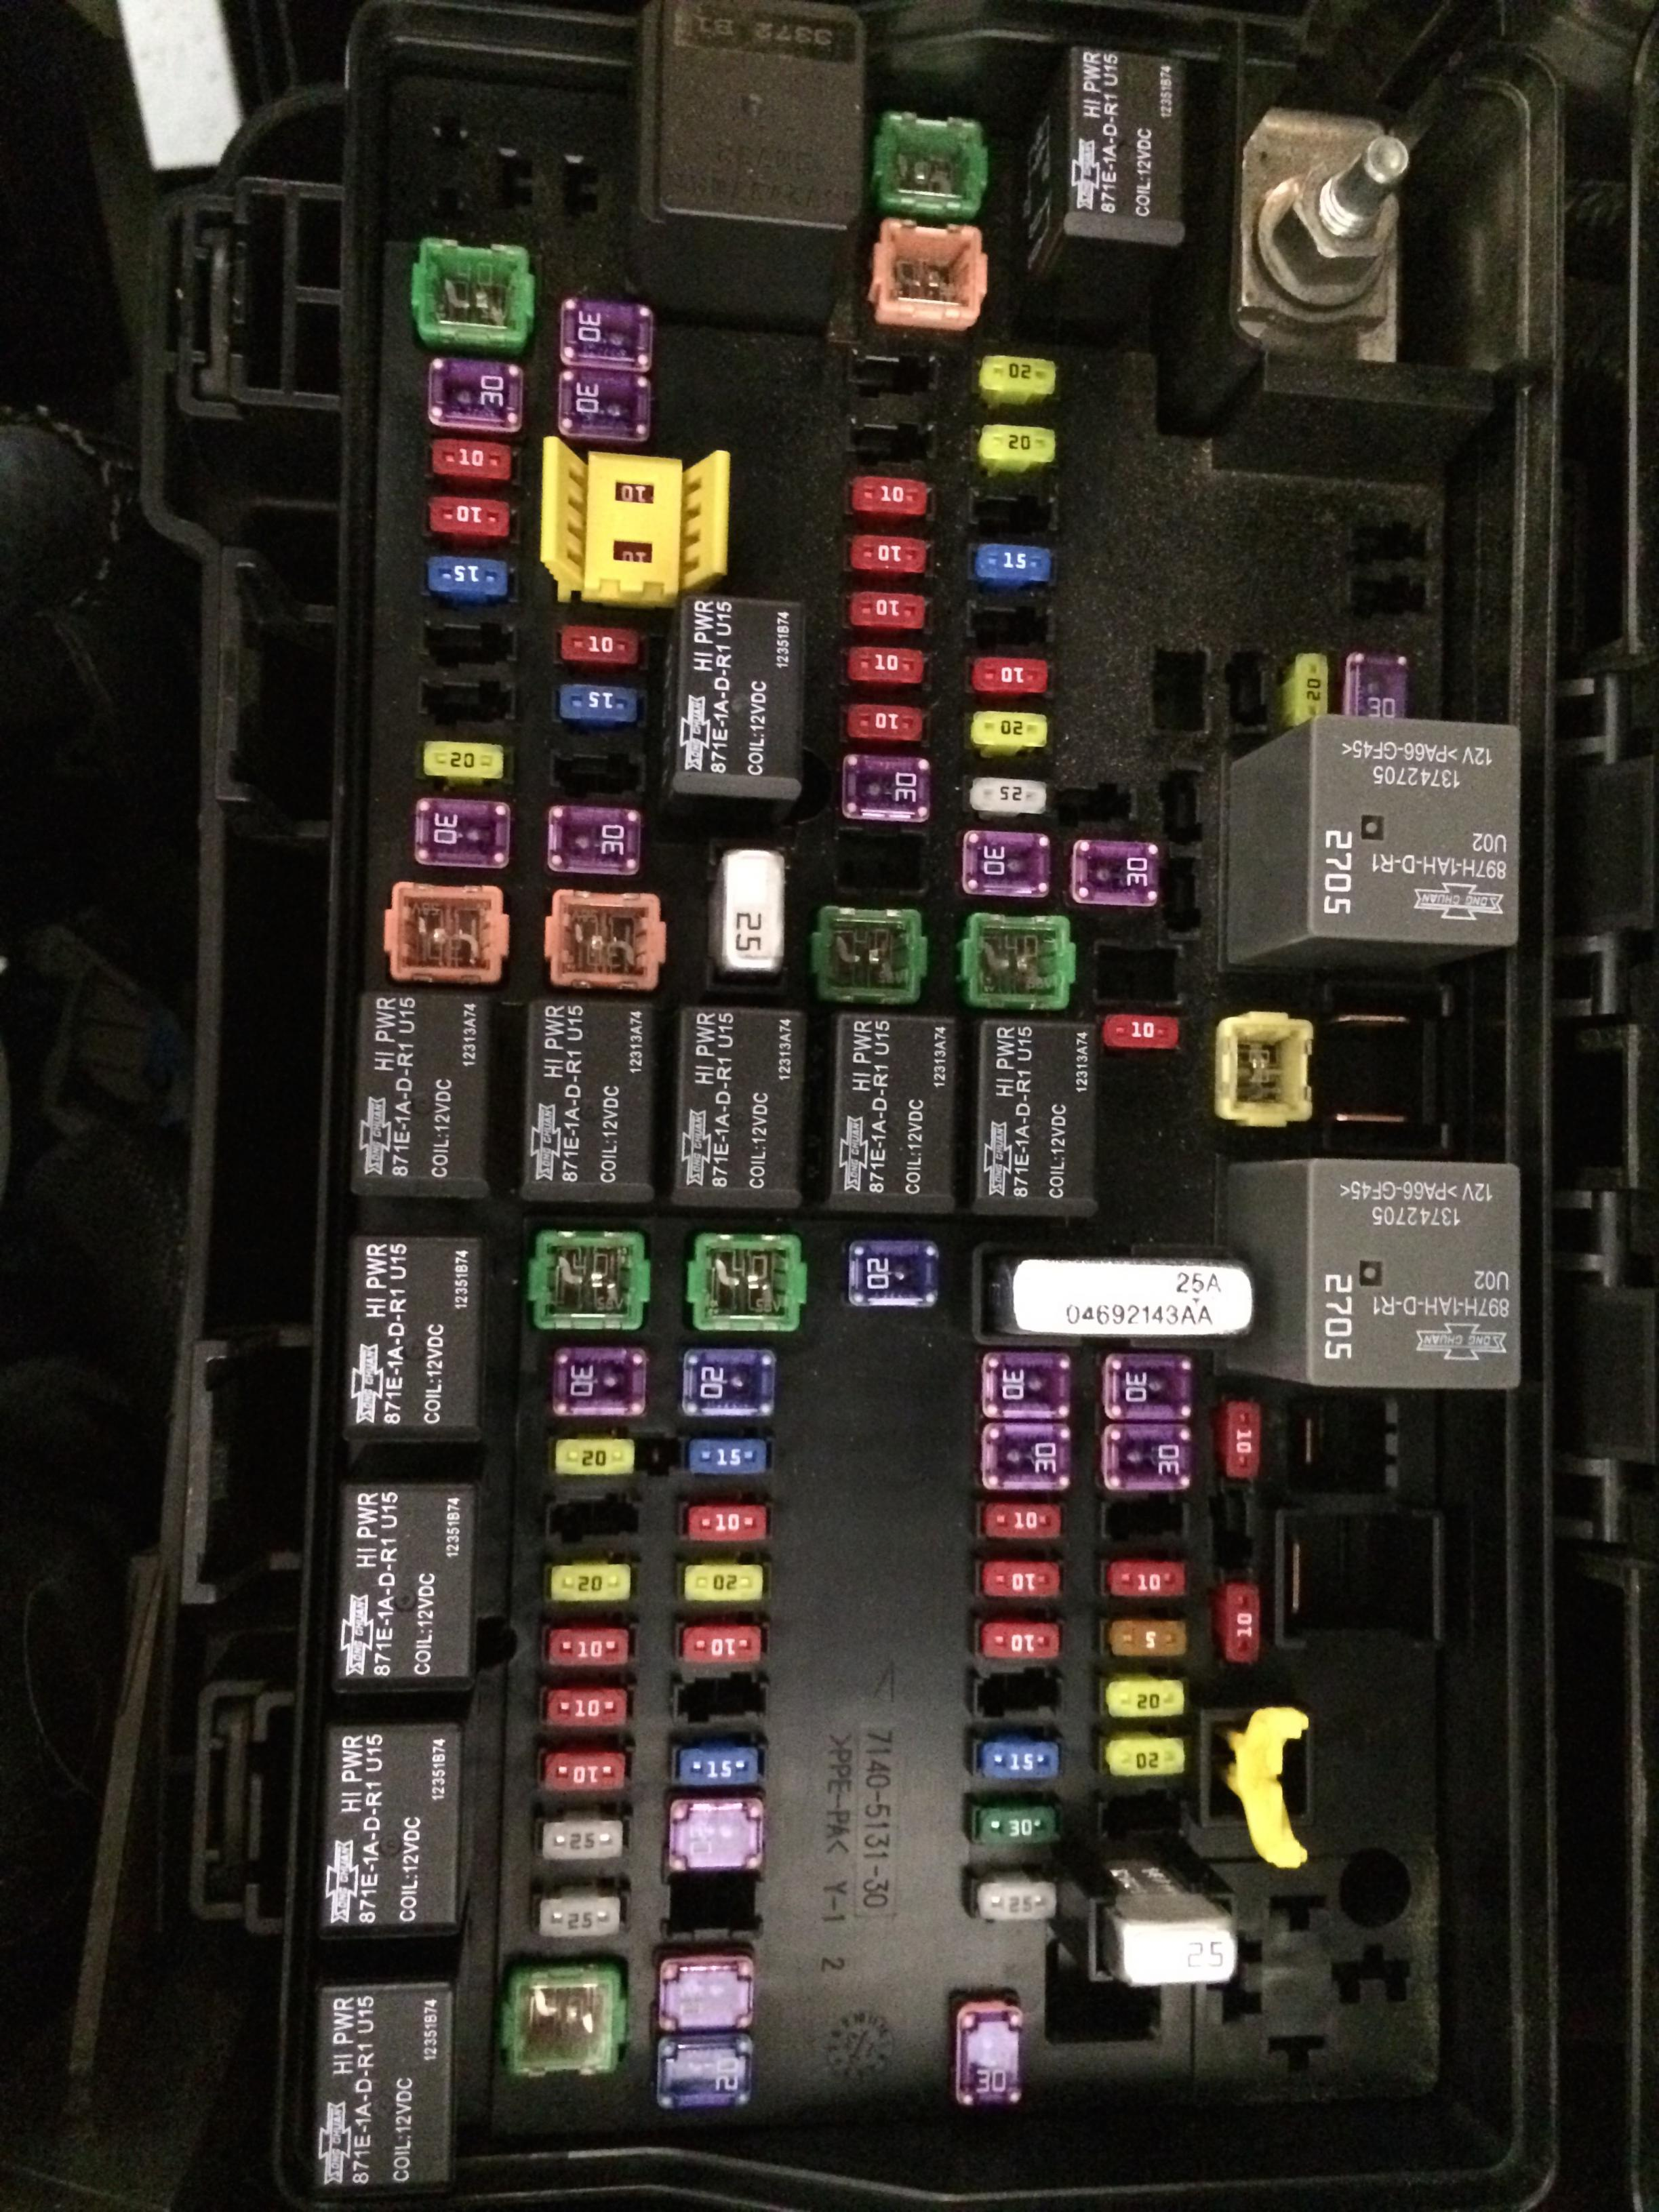 2013 dodge ram fuse box change your idea wiring diagram design • fuse layout 2013 slt 2500 diesel dodge cummins diesel forum rh cumminsforum com 2013 dodge ram fuse box layout 2013 dodge ram 1500 interior fuse box